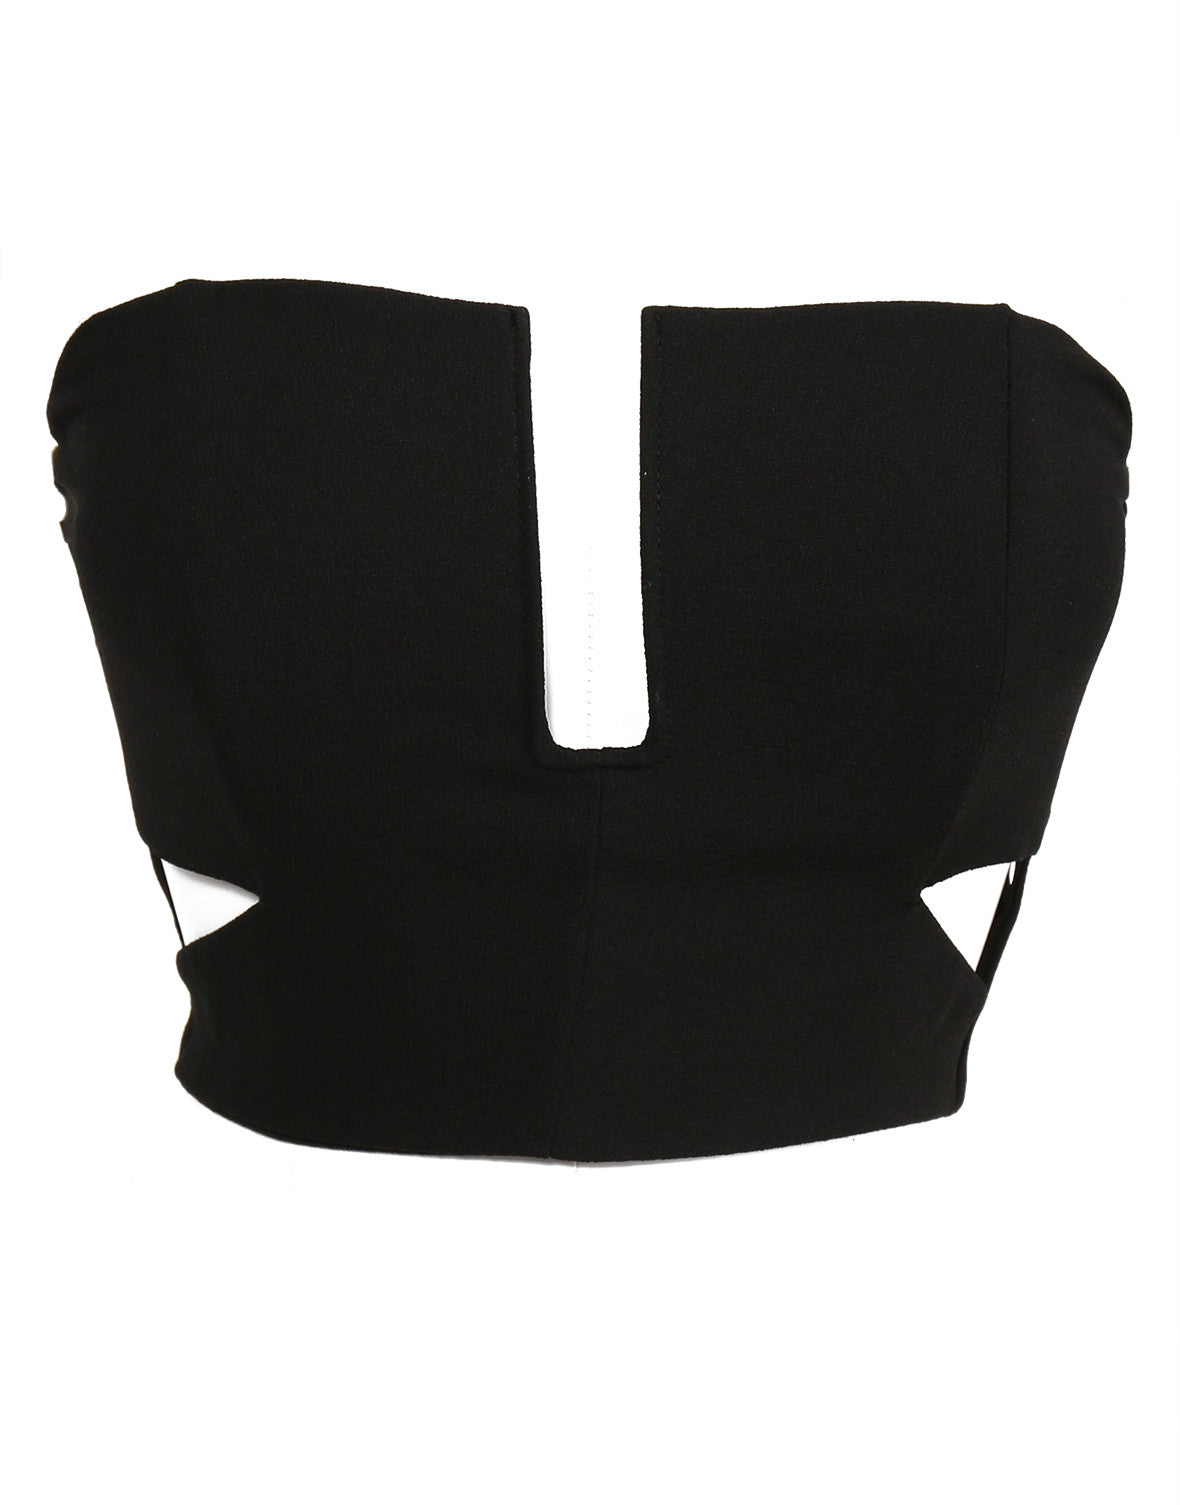 Side Slit Strapless Wired Crop Top - Black